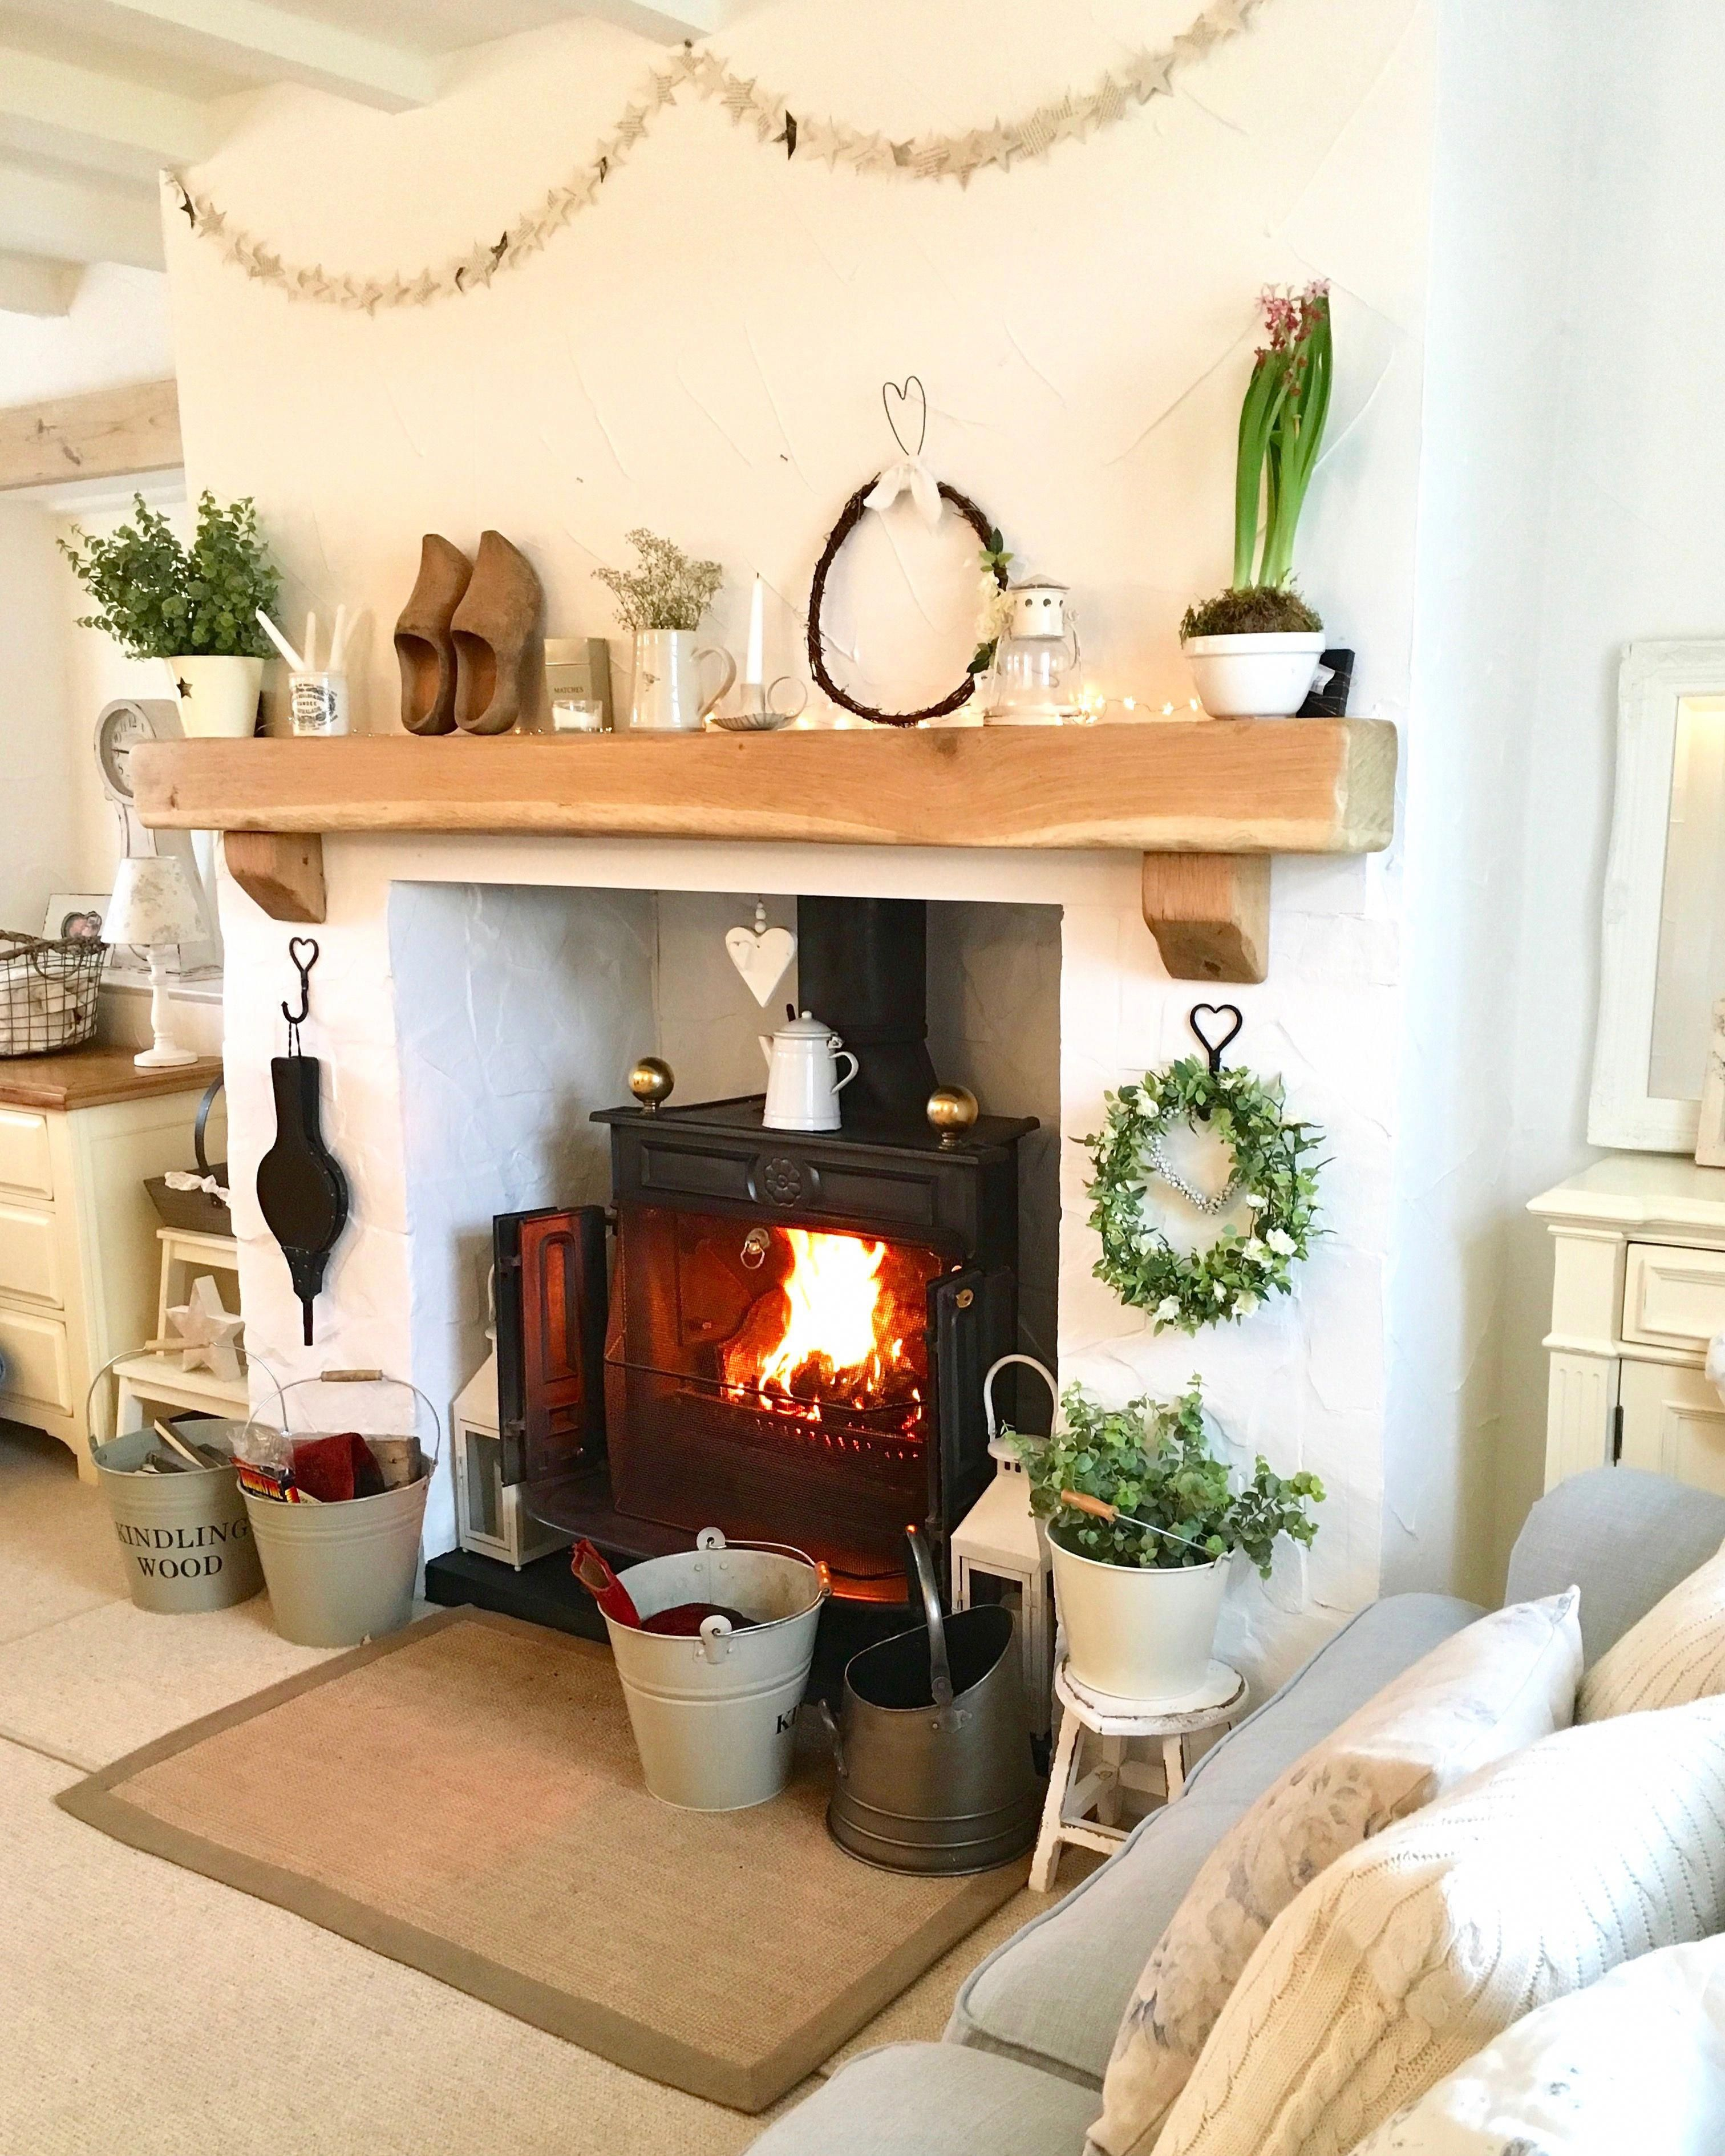 Consider These Fabulous Concepts Intended For Old Time Countrycottagediydecor Wohnen Wohnzimmer Kamin